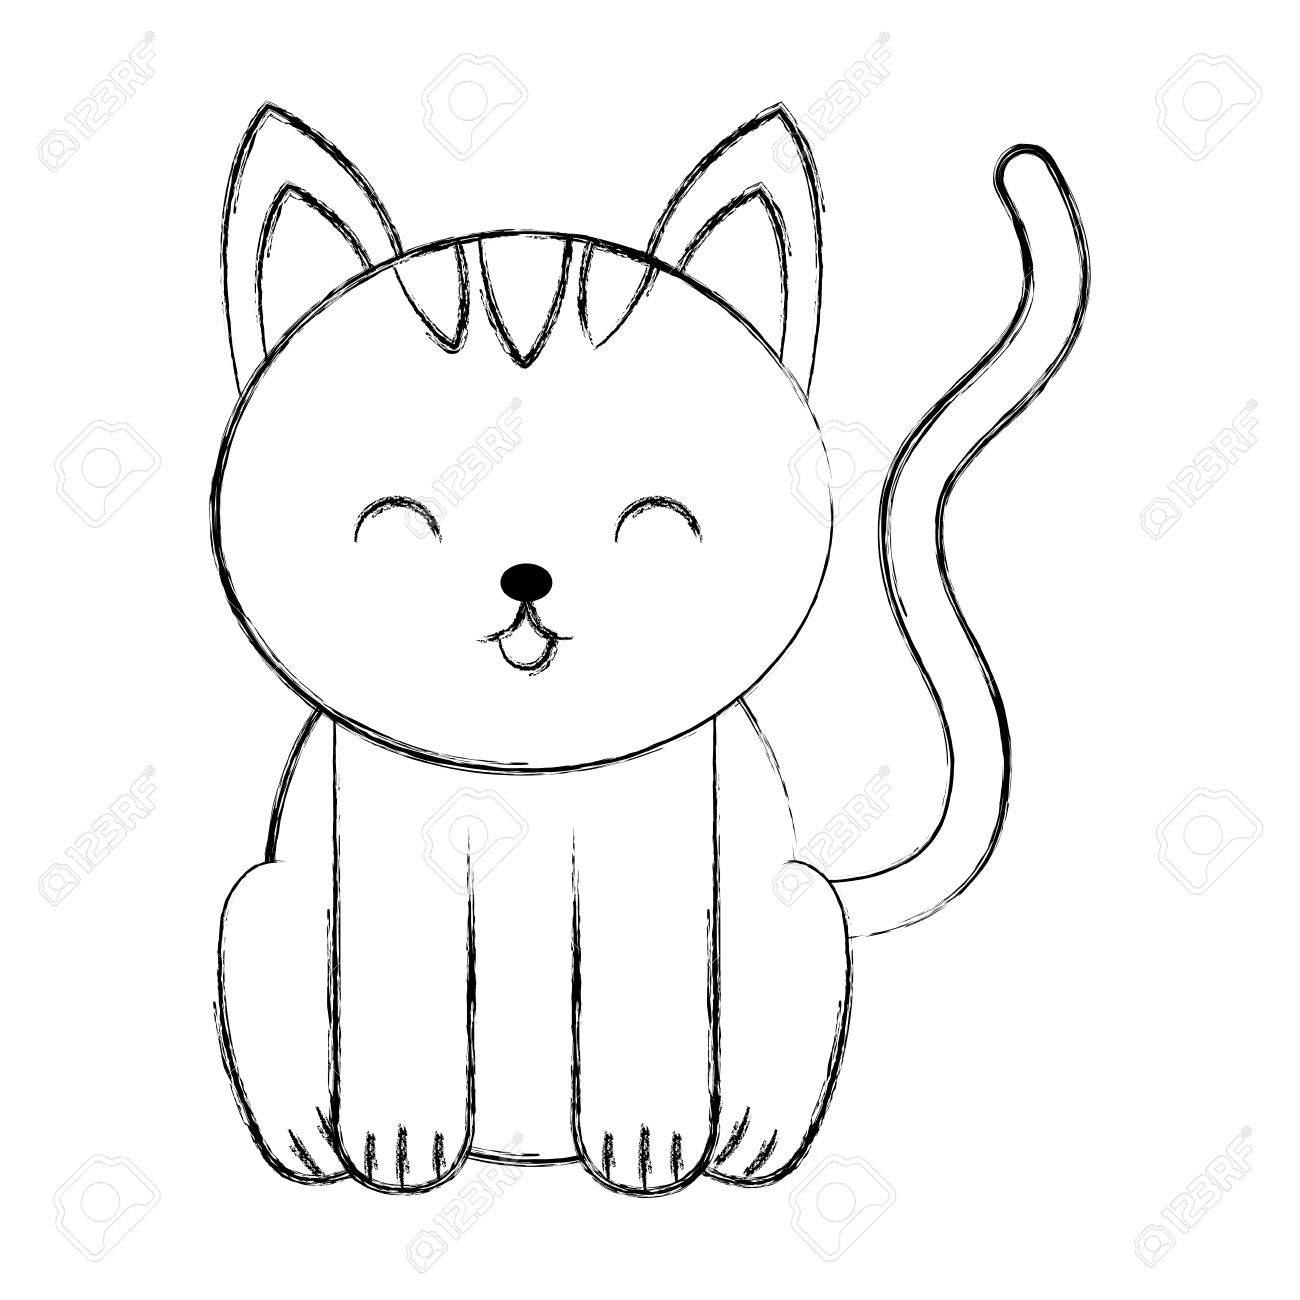 Cute Sketch Draw Cat Cartoon Graphic Design Royalty Free Cliparts